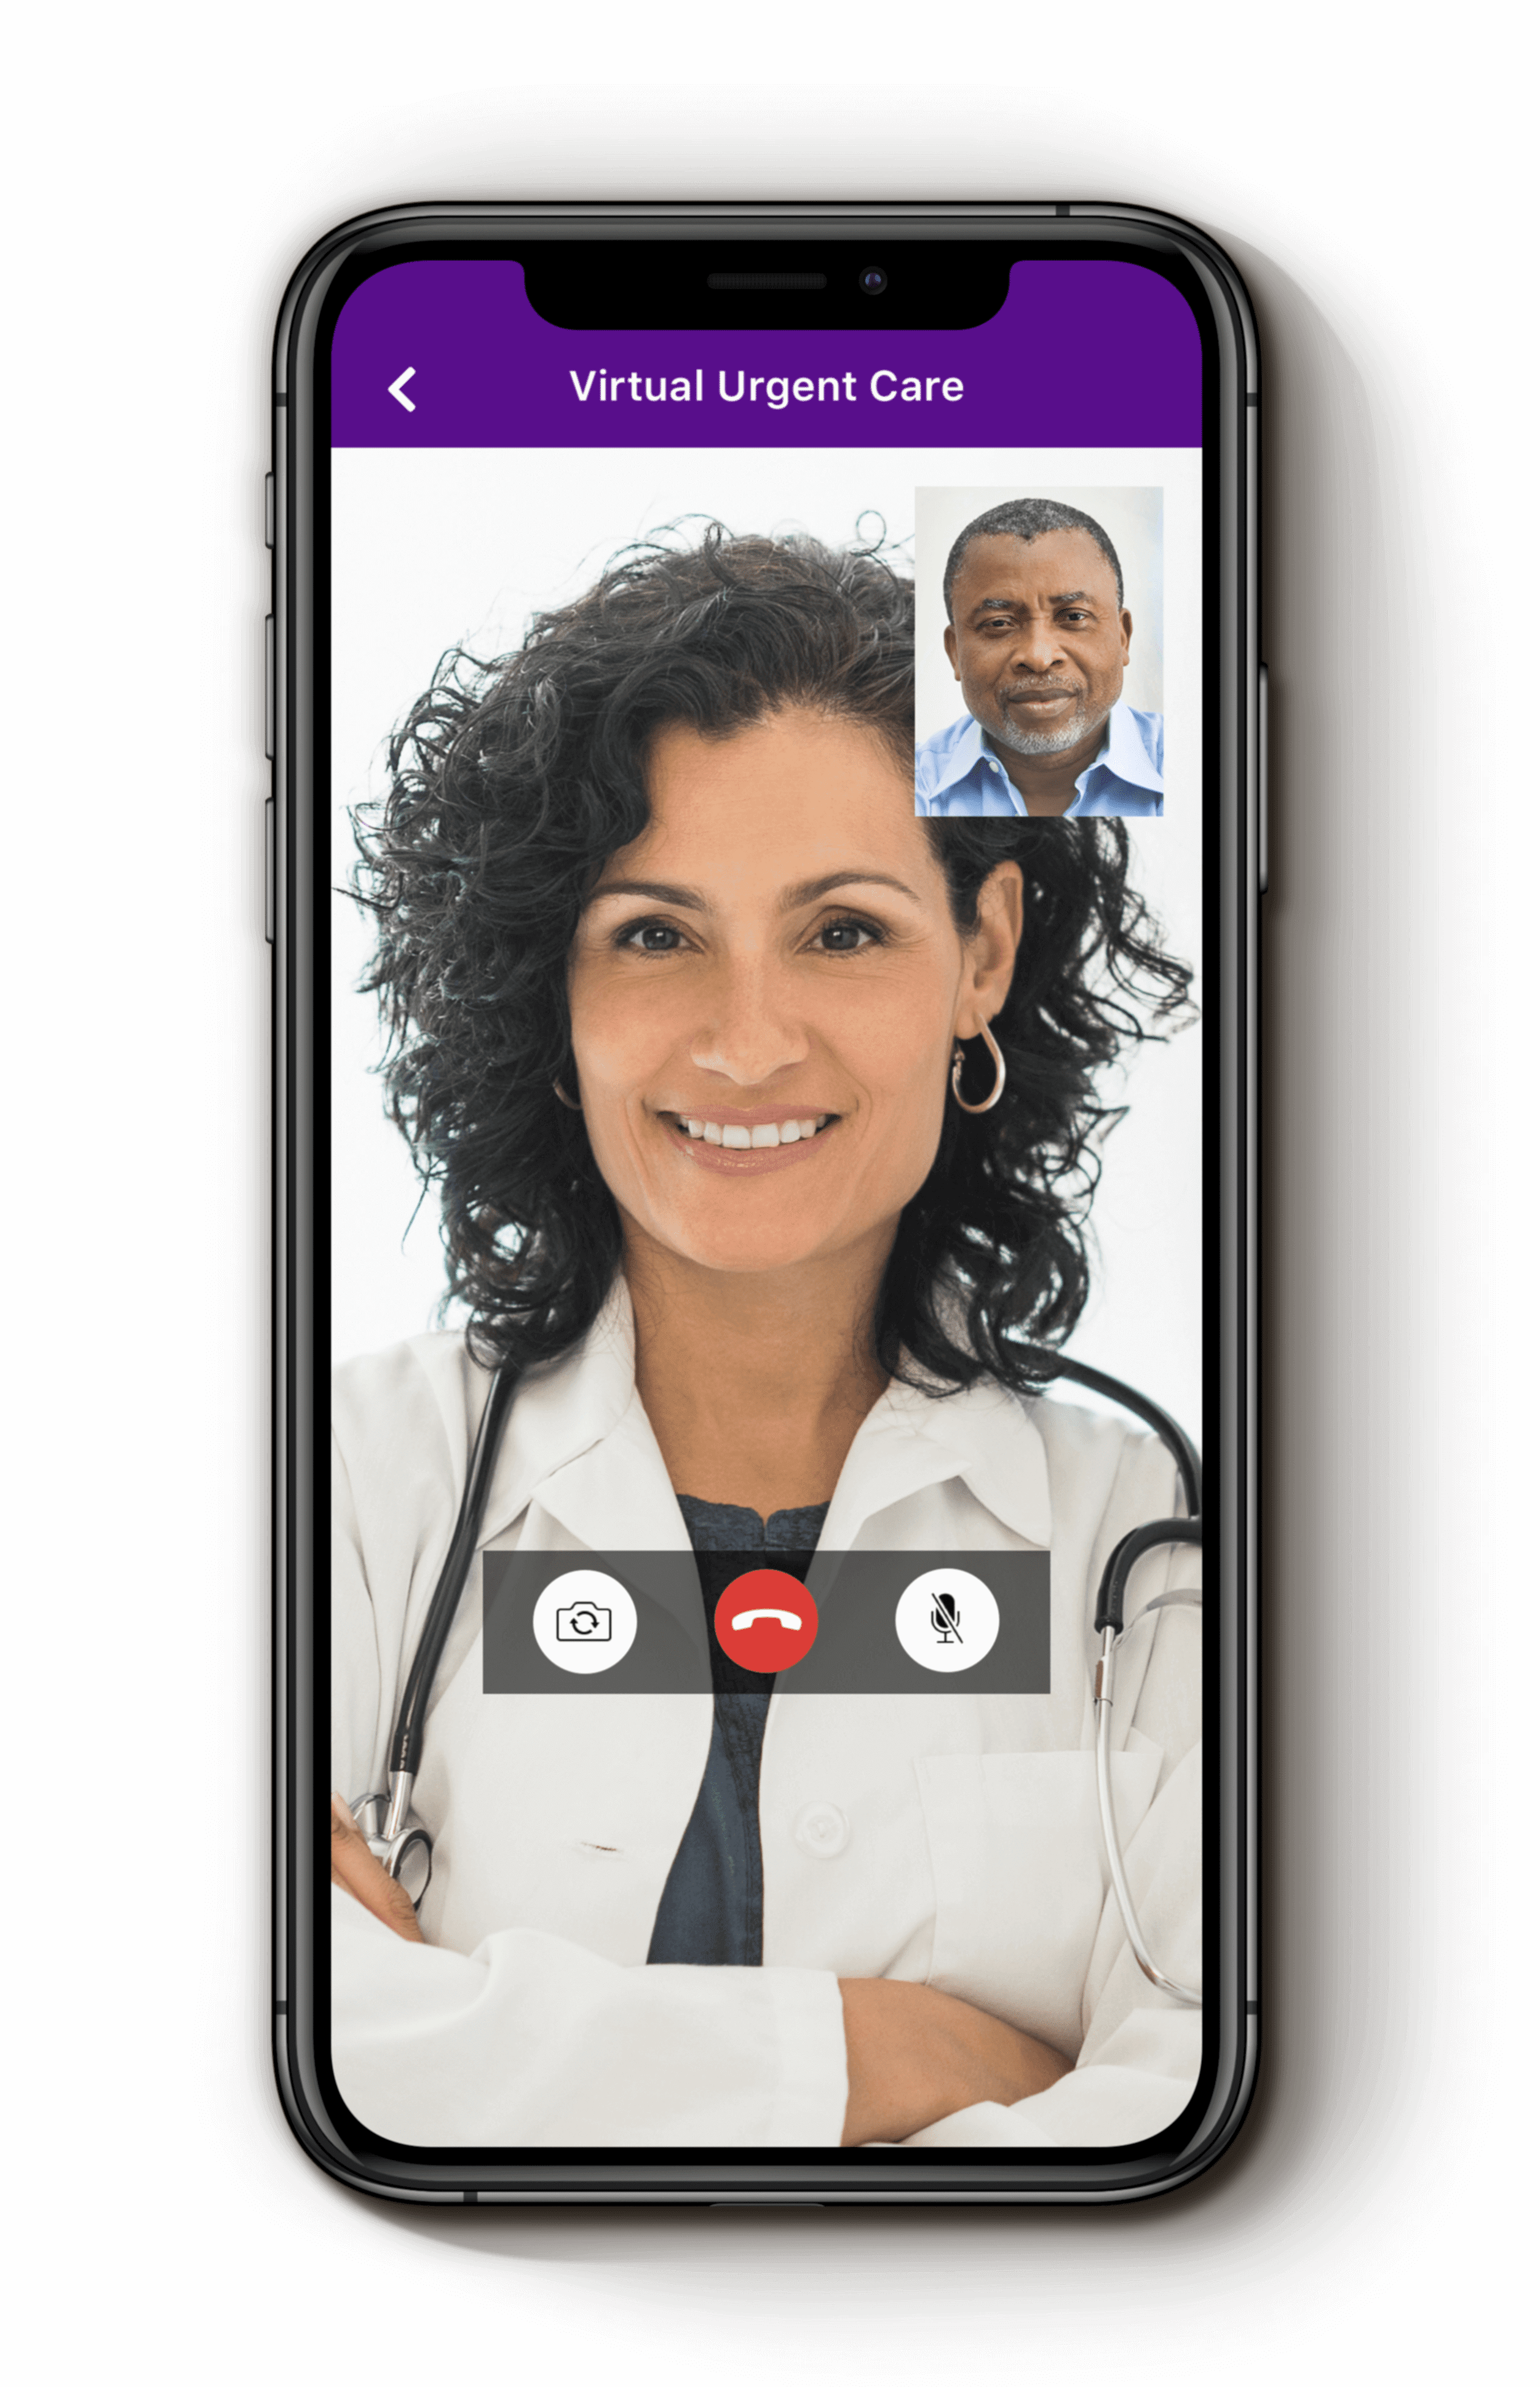 Virtual Urgent Care Through the NYU Langone Health App